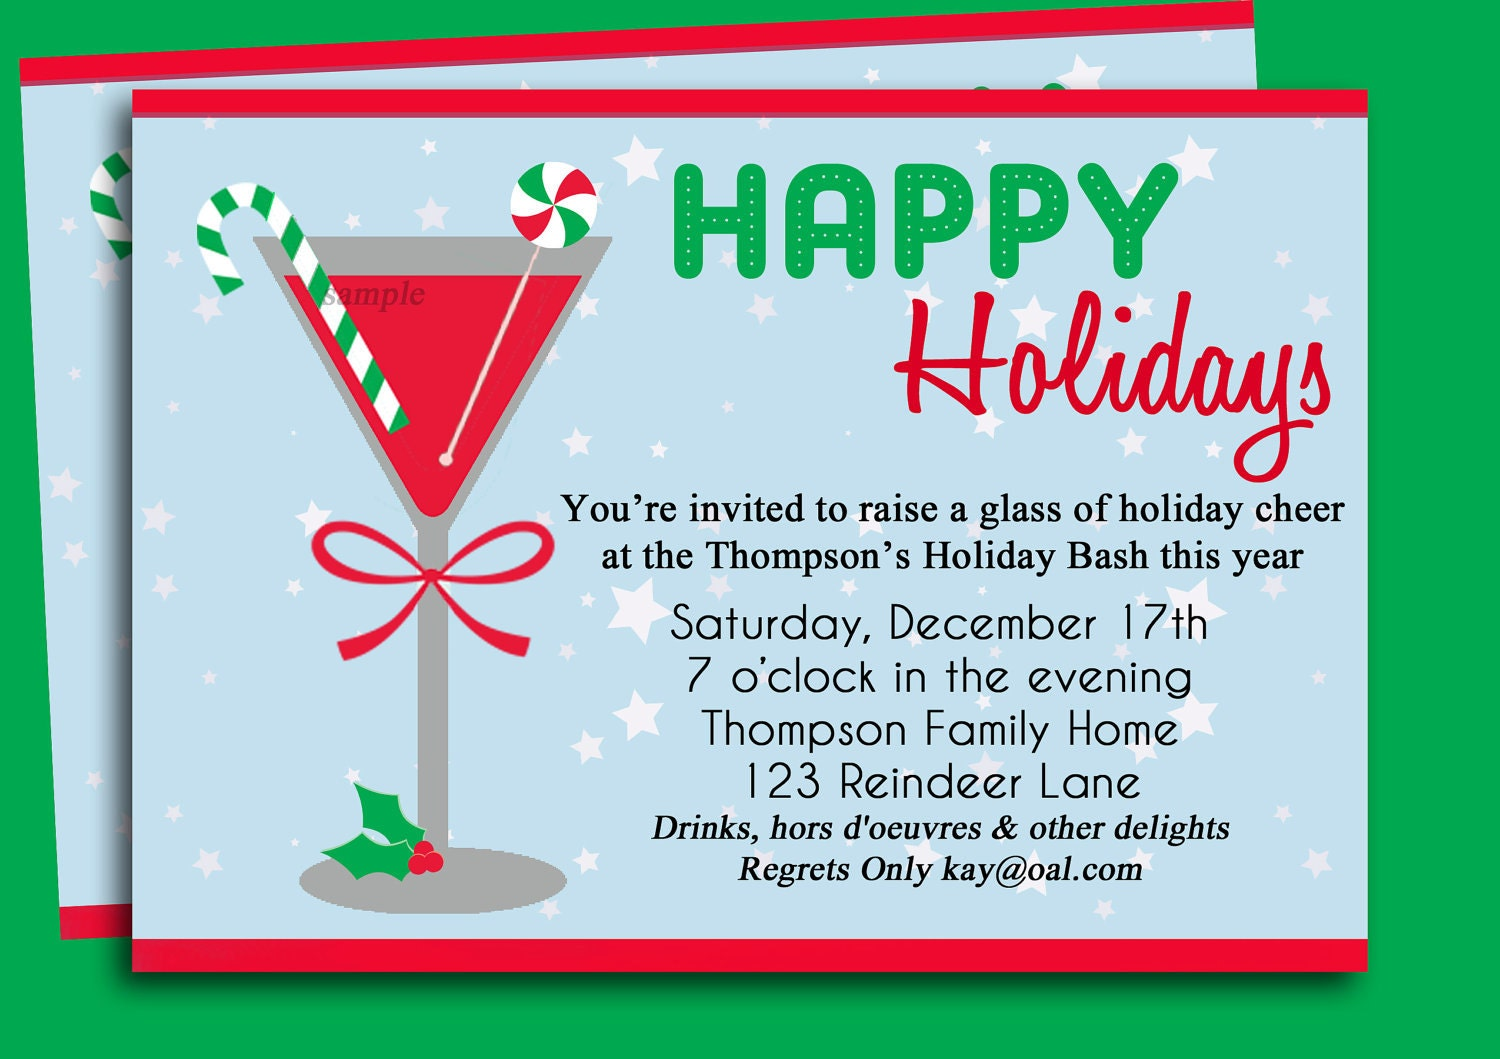 Christmas Cocktail Party Invitation Printable Holiday – Invitation to a Christmas Party